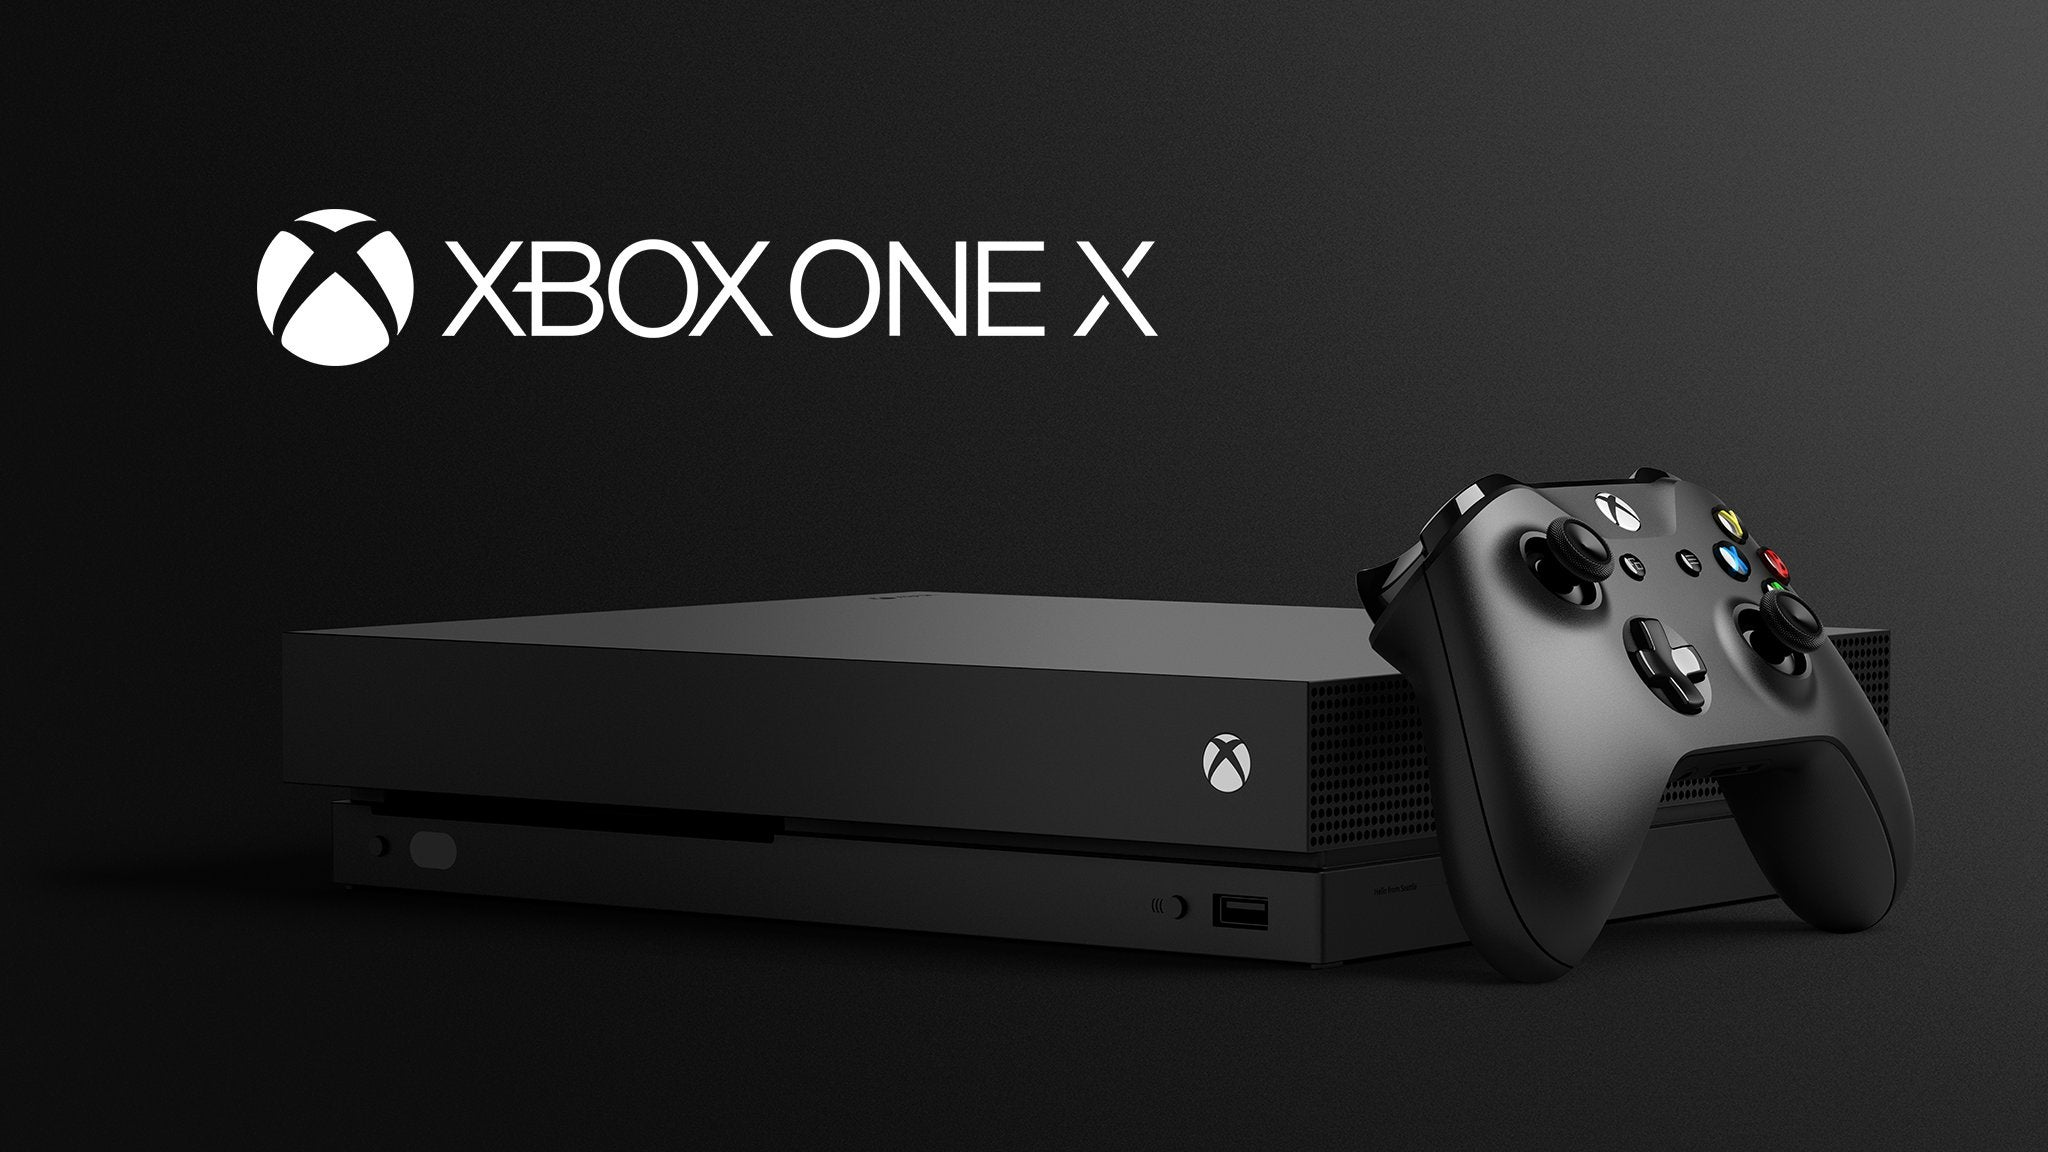 Xbox one x pre orders live now on amazon sciox Choice Image